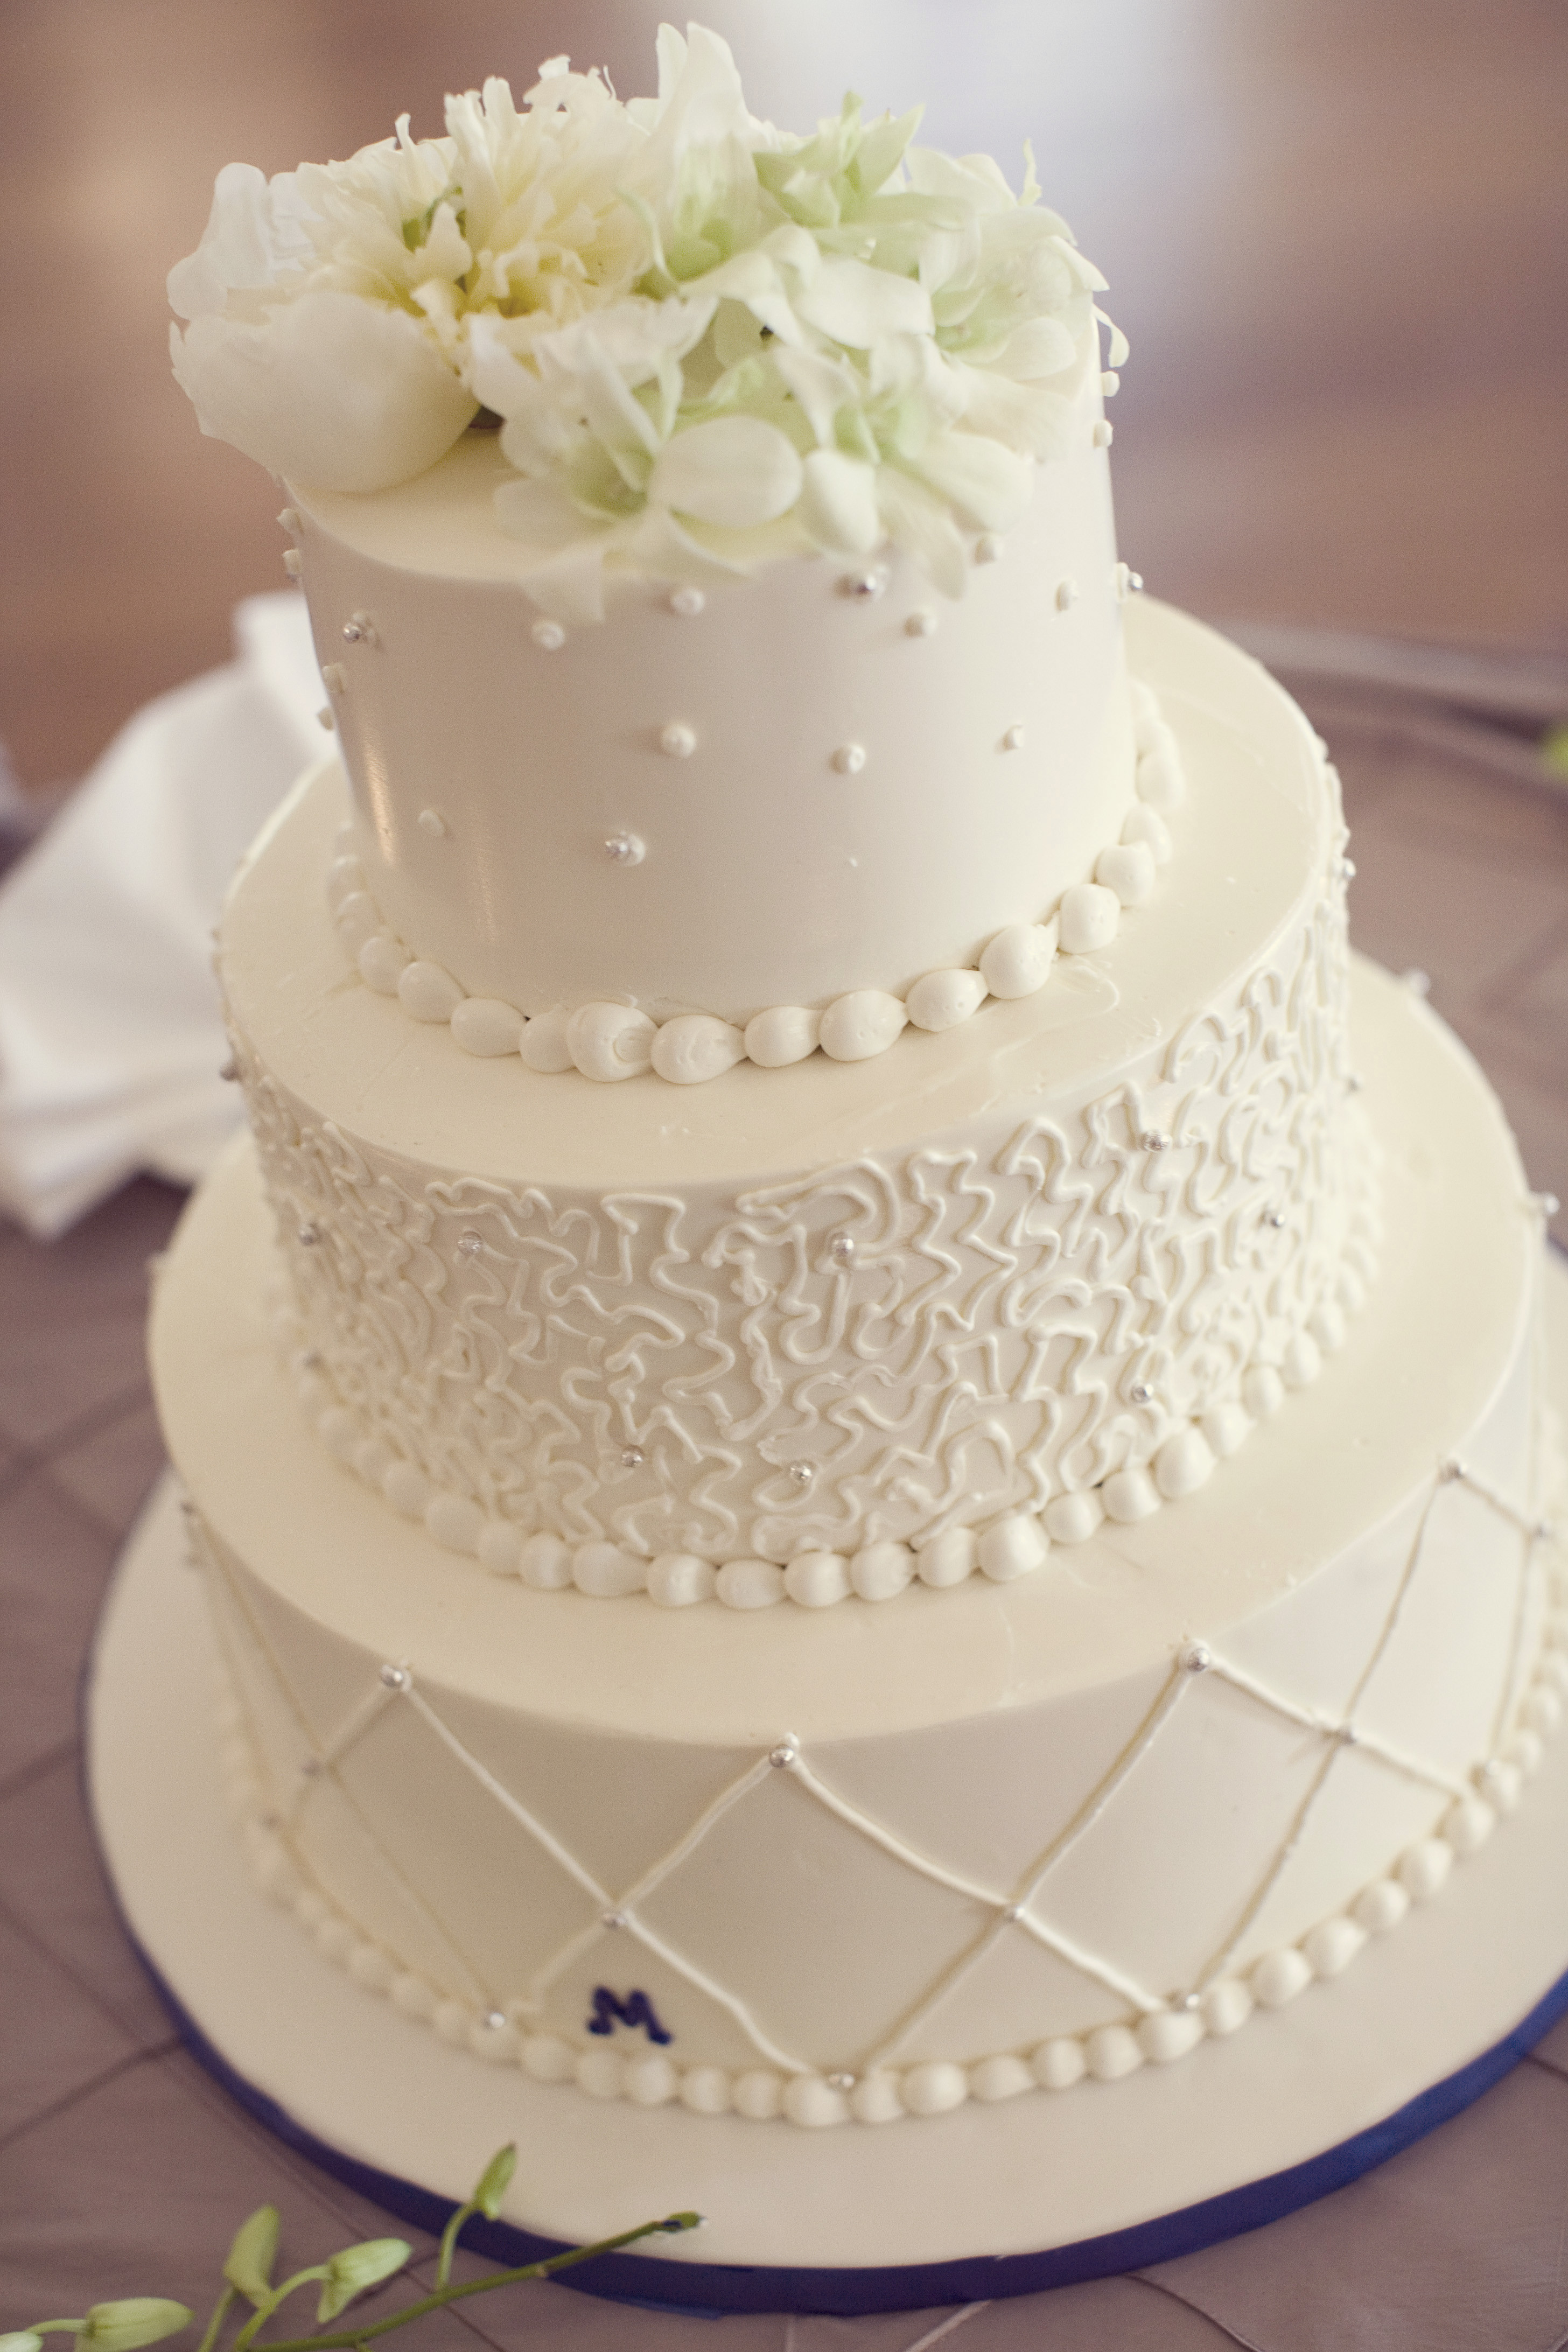 Recipe For Wedding Cakes  Wedding Cake Frosting Recipe — Dishmaps